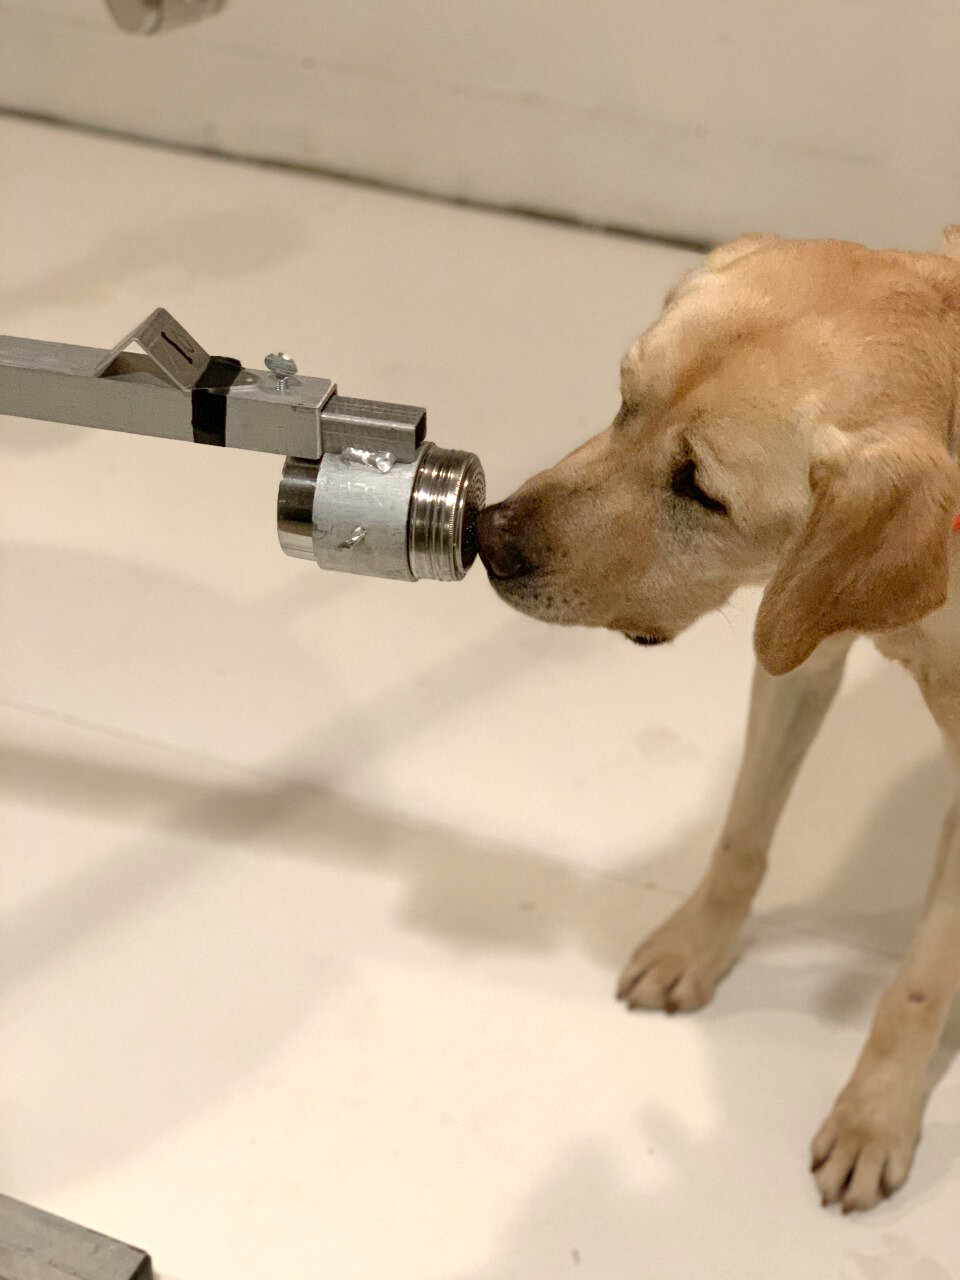 With impressive accuracy, dogs can sniff out coronavirus